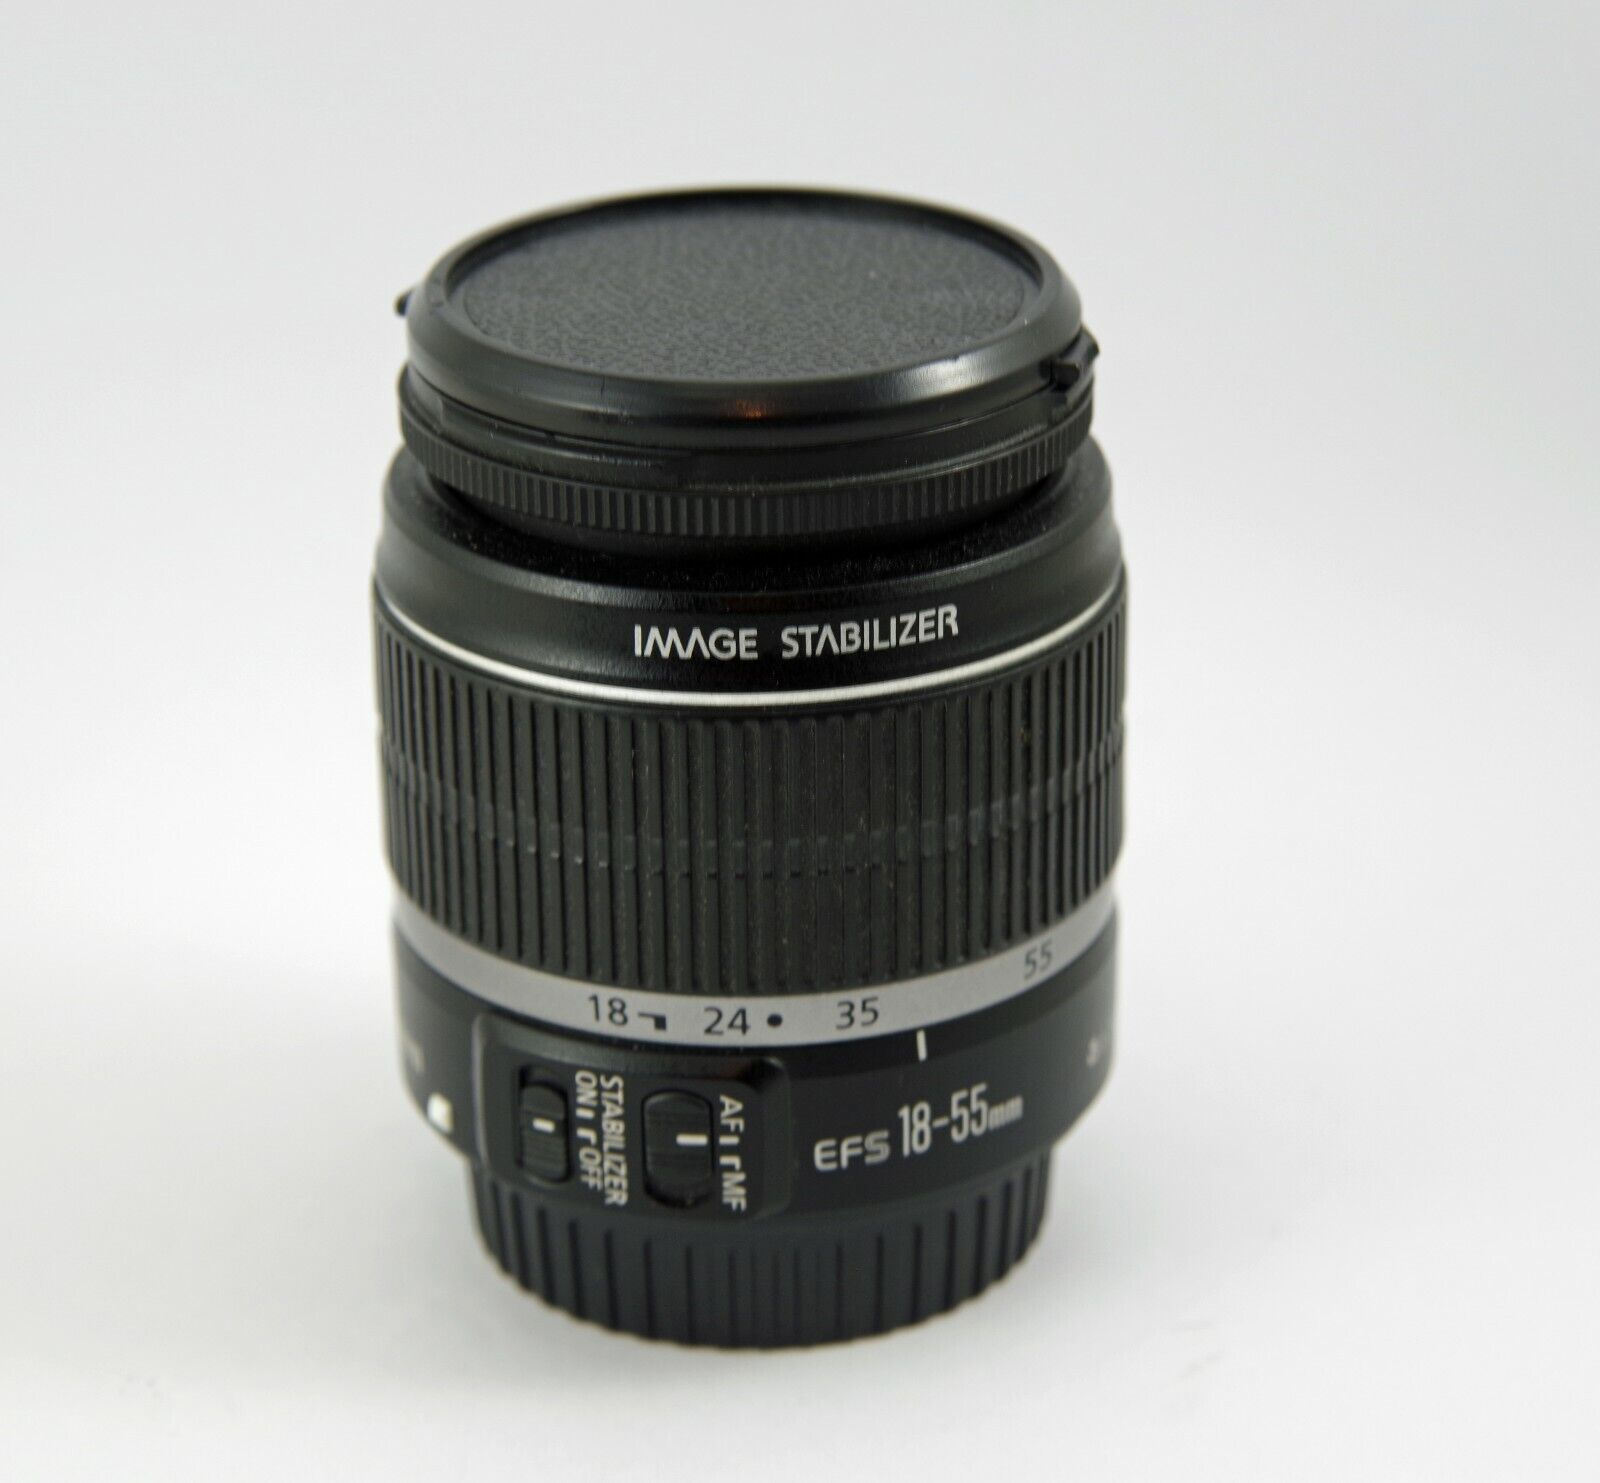 Canon EF-S 18-55mm F3.5-5.6 IS - $39.75